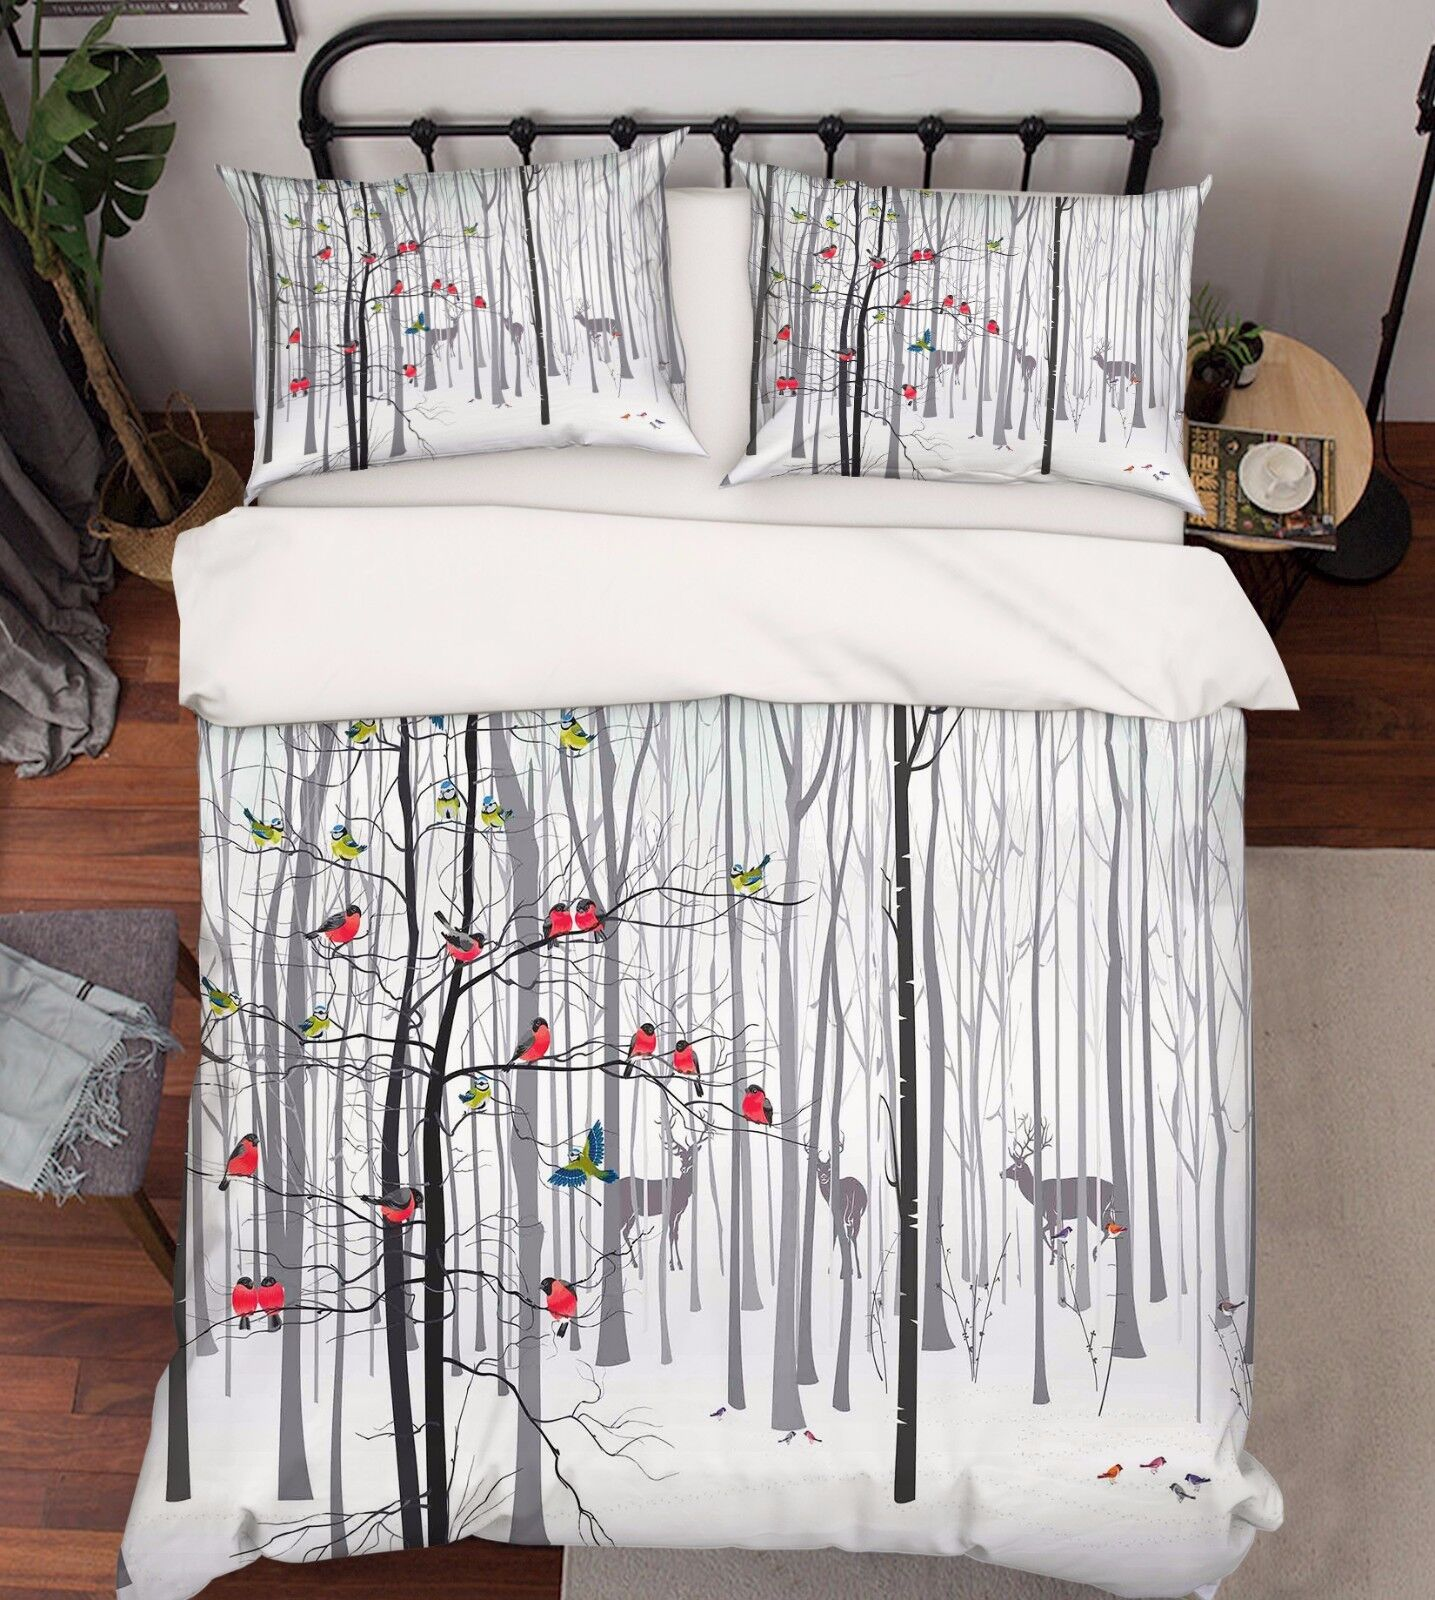 3D Äste Vogel 809 Bett Kissenbezüge steppen Duvet Decken Set Single DE Carly